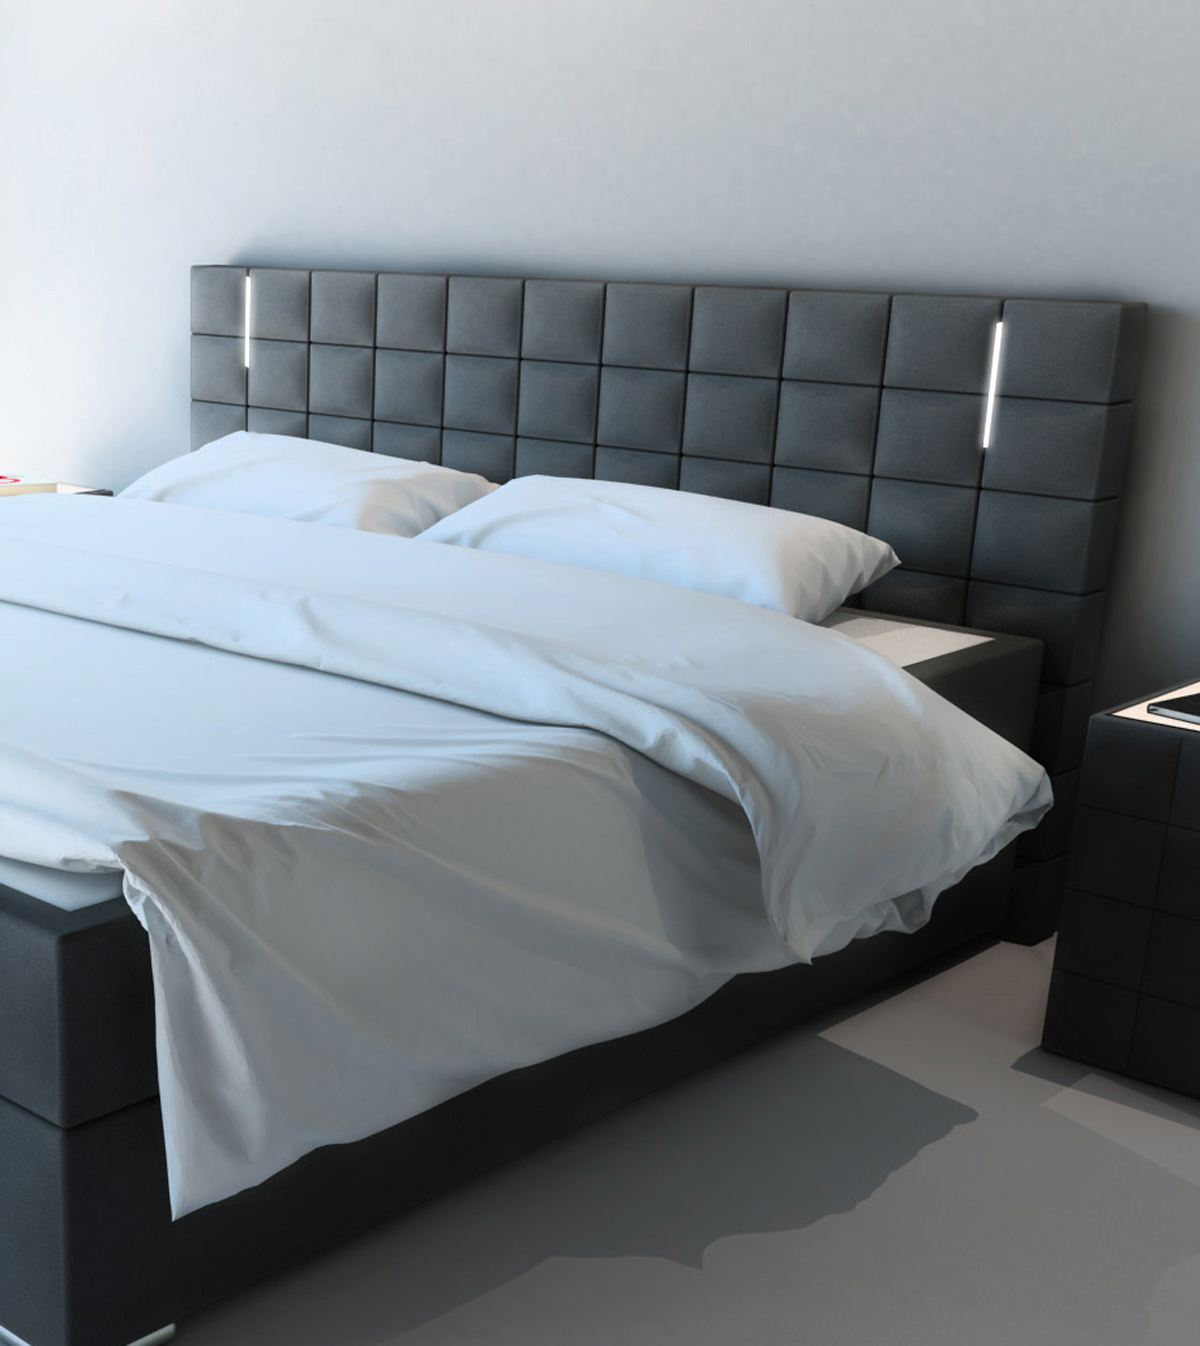 sam boxspringbett hotelbett stoff grau led 180 x 200 cm boston. Black Bedroom Furniture Sets. Home Design Ideas